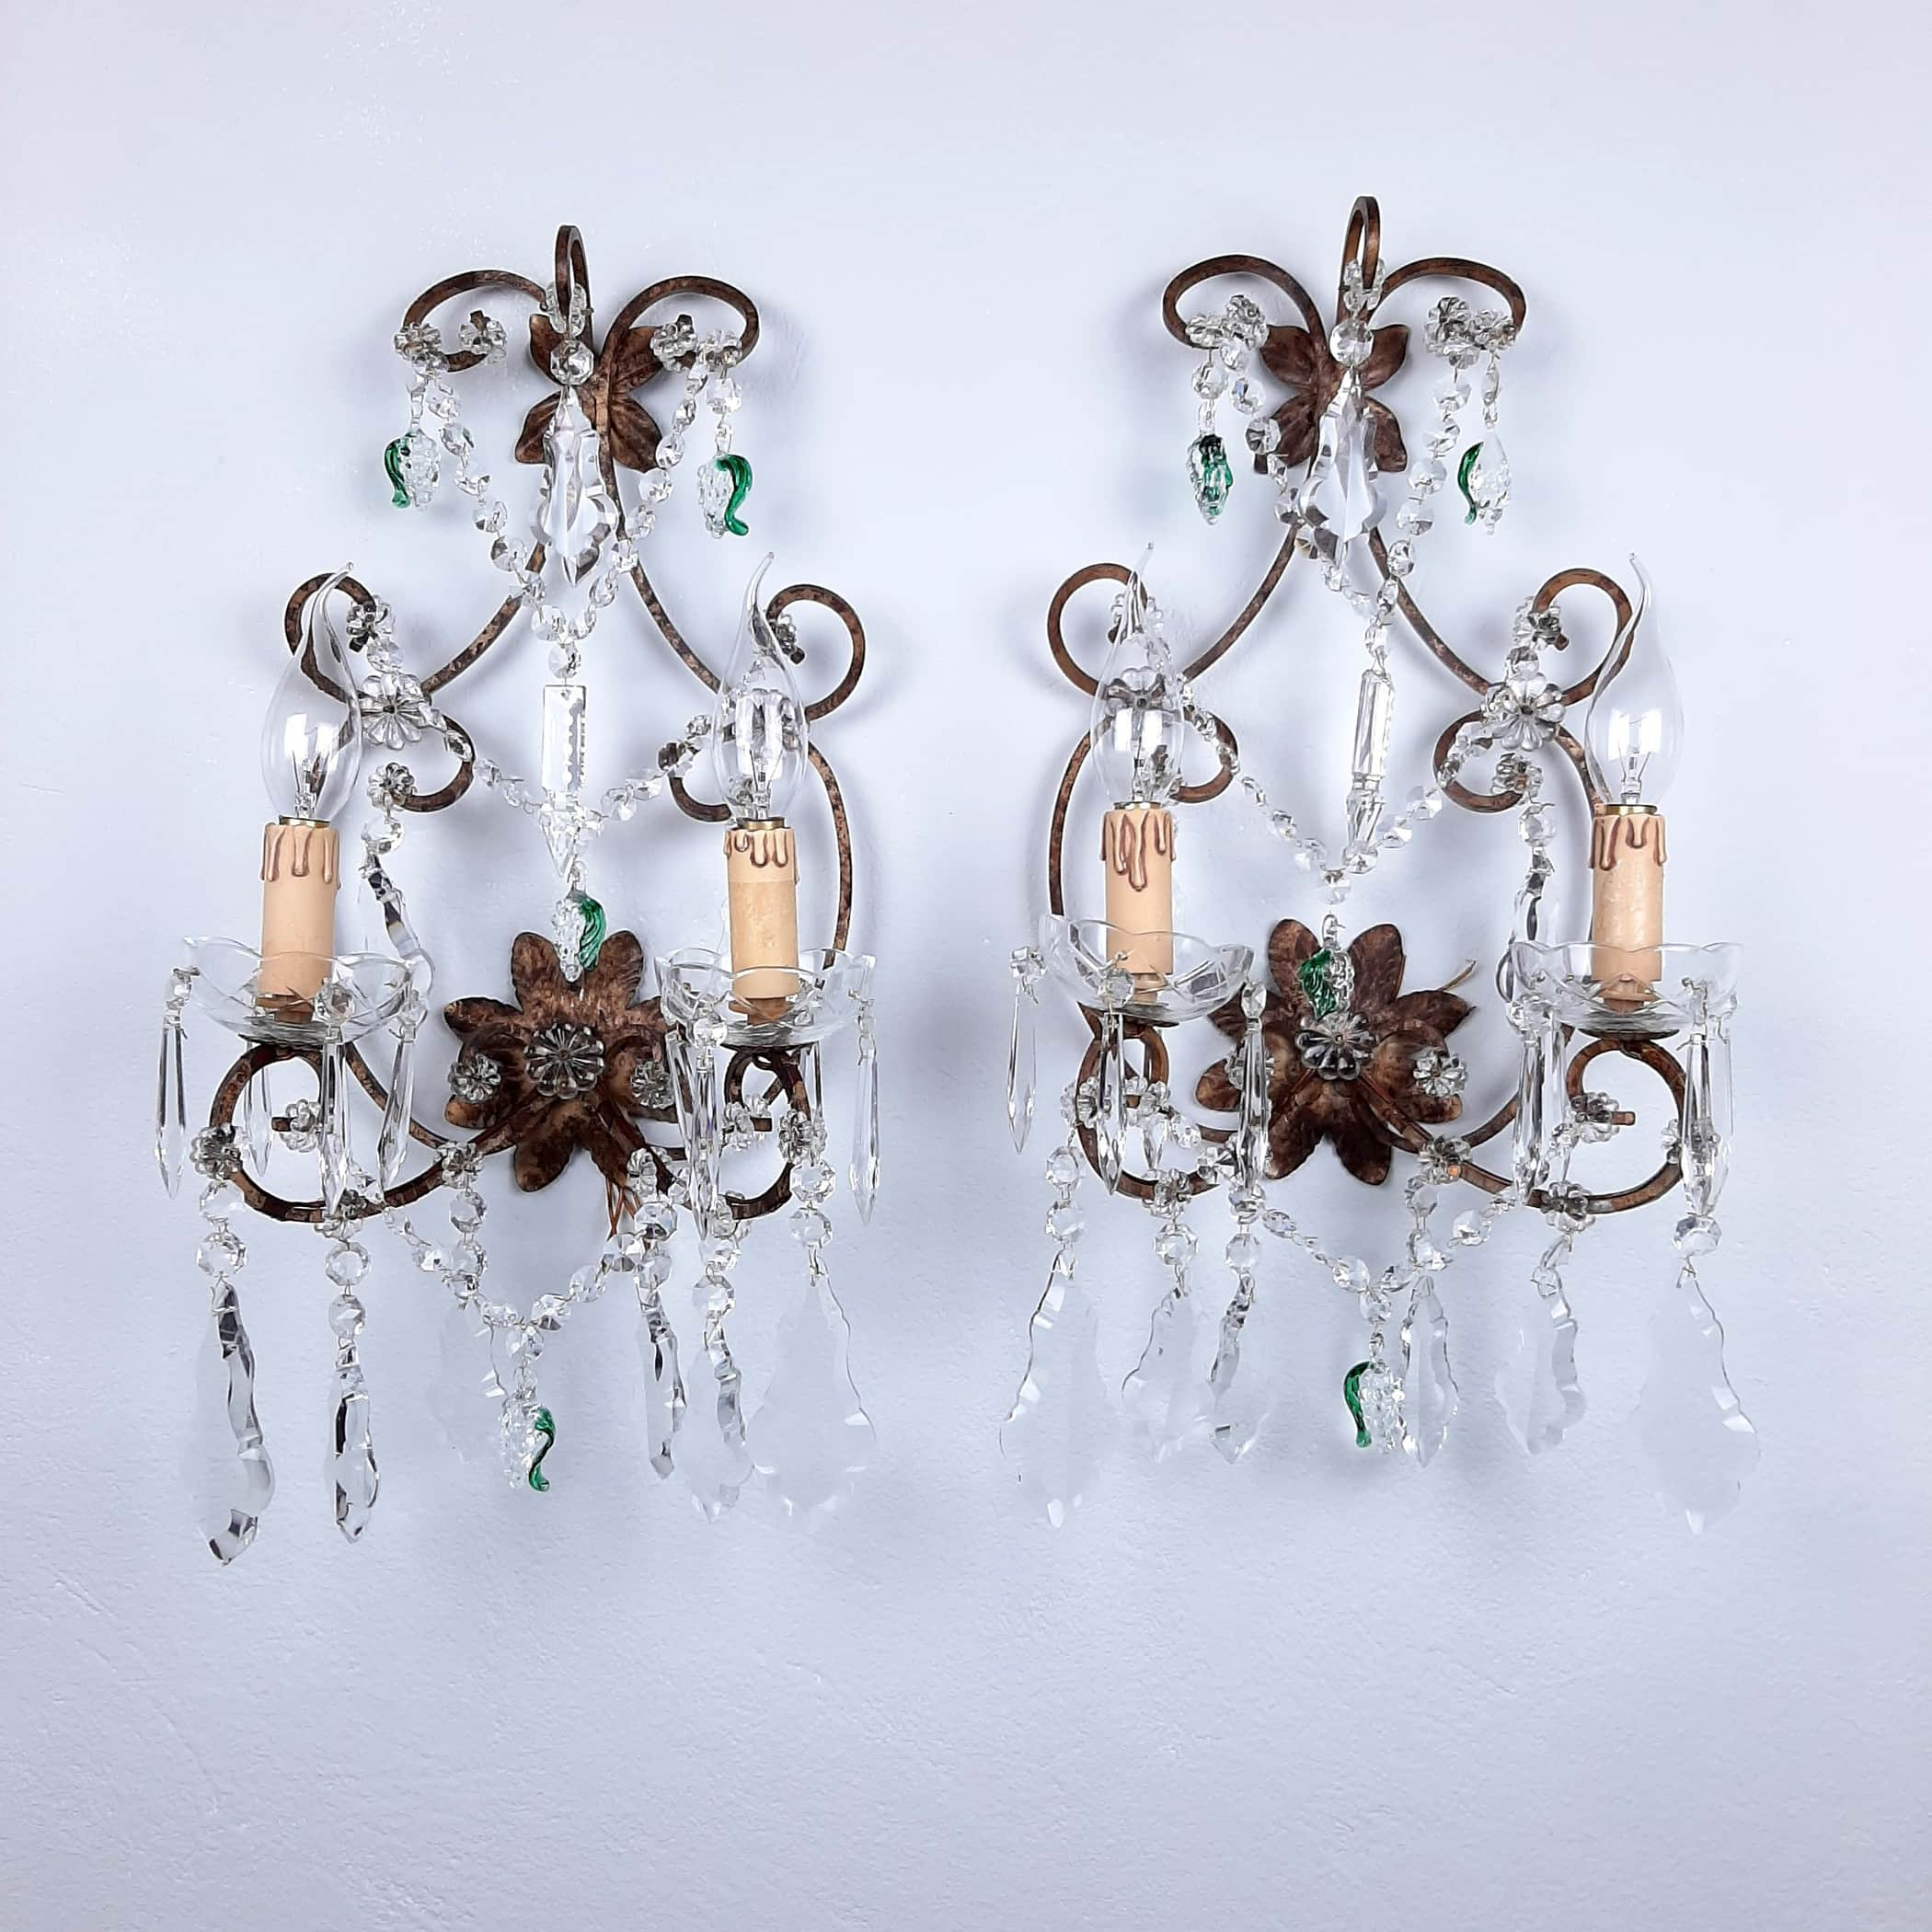 Pair vintage murano crystal sconce Italy 50s Antique Wall Sconces Retro Italian Wall Lights